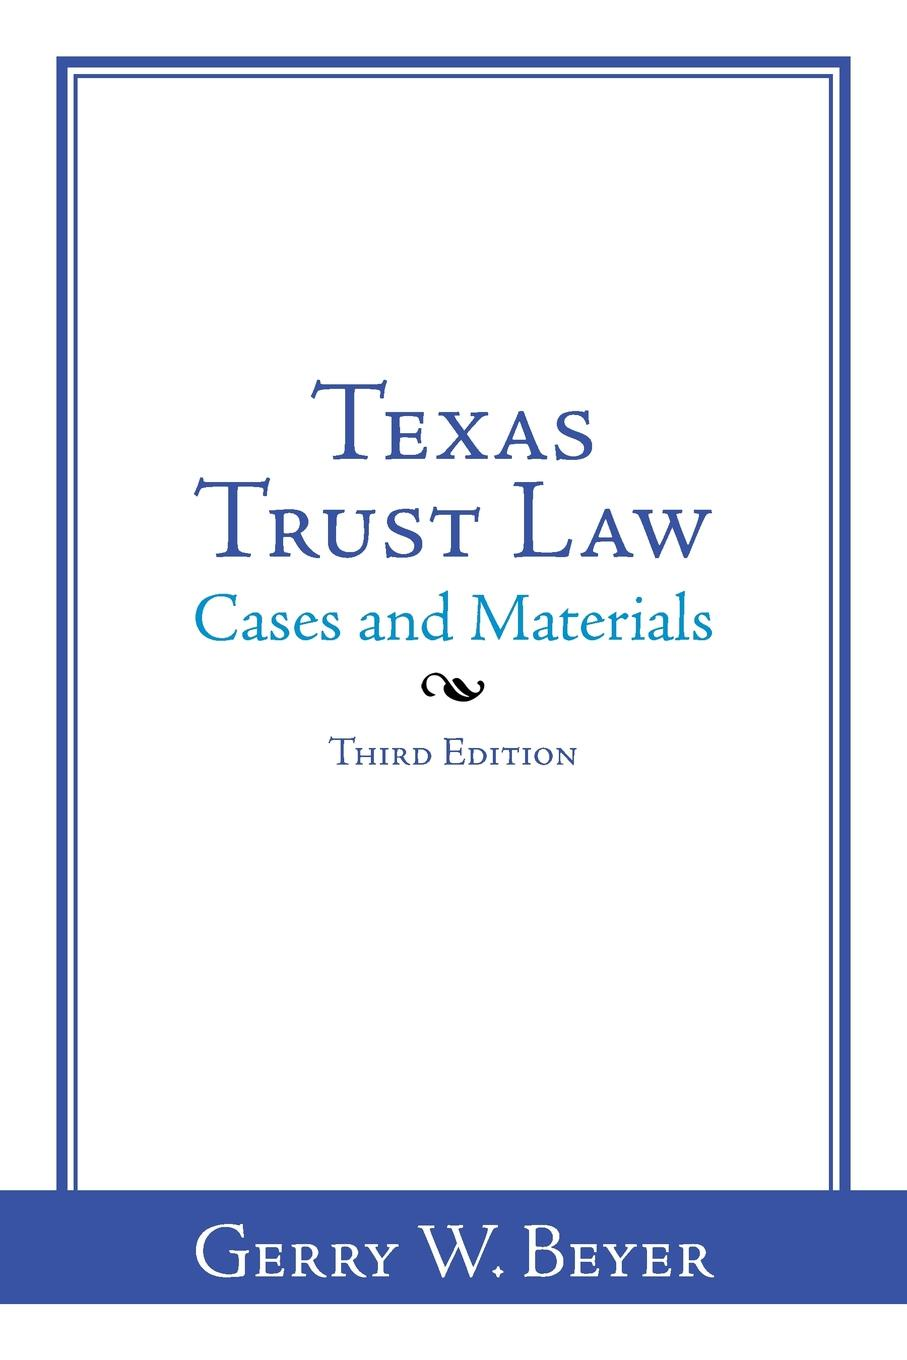 Gerry W. Beyer Texas Trust Law. Cases and Materials-Third Edition sherwyn morreale building the high trust organization strategies for supporting five key dimensions of trust